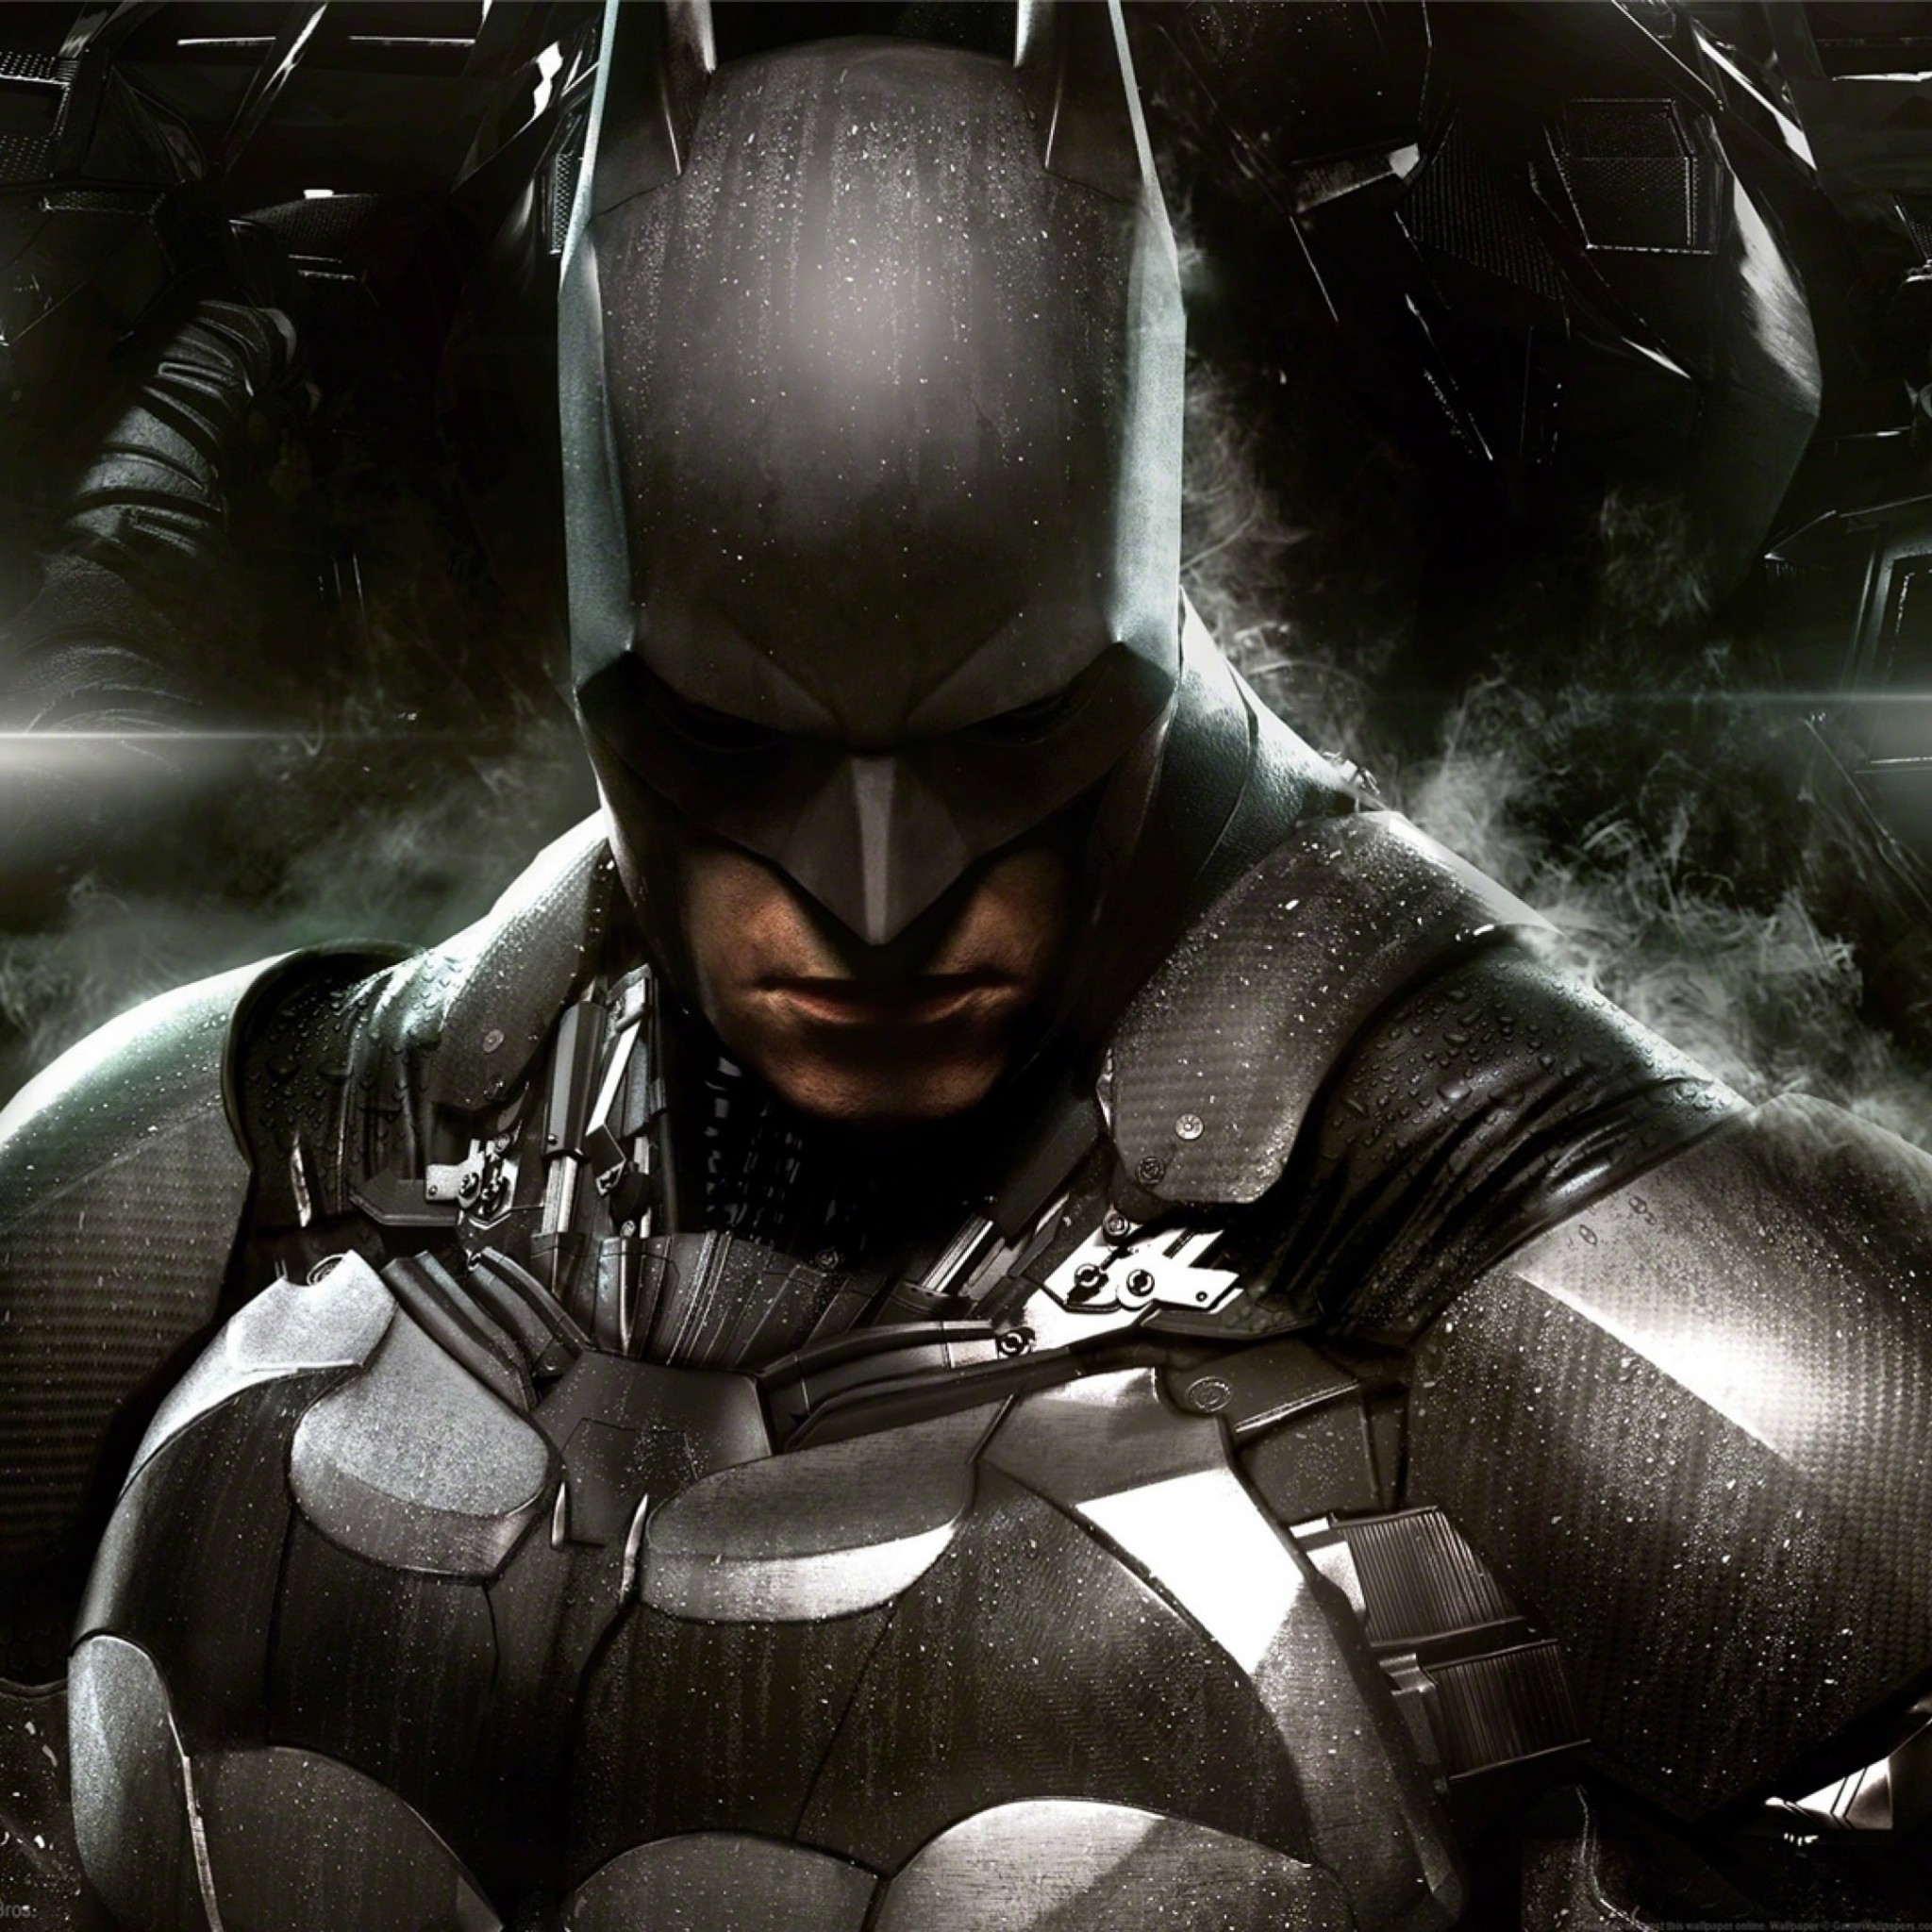 The Batman : Arkham Knight Wallpaper for Google Nexus 9